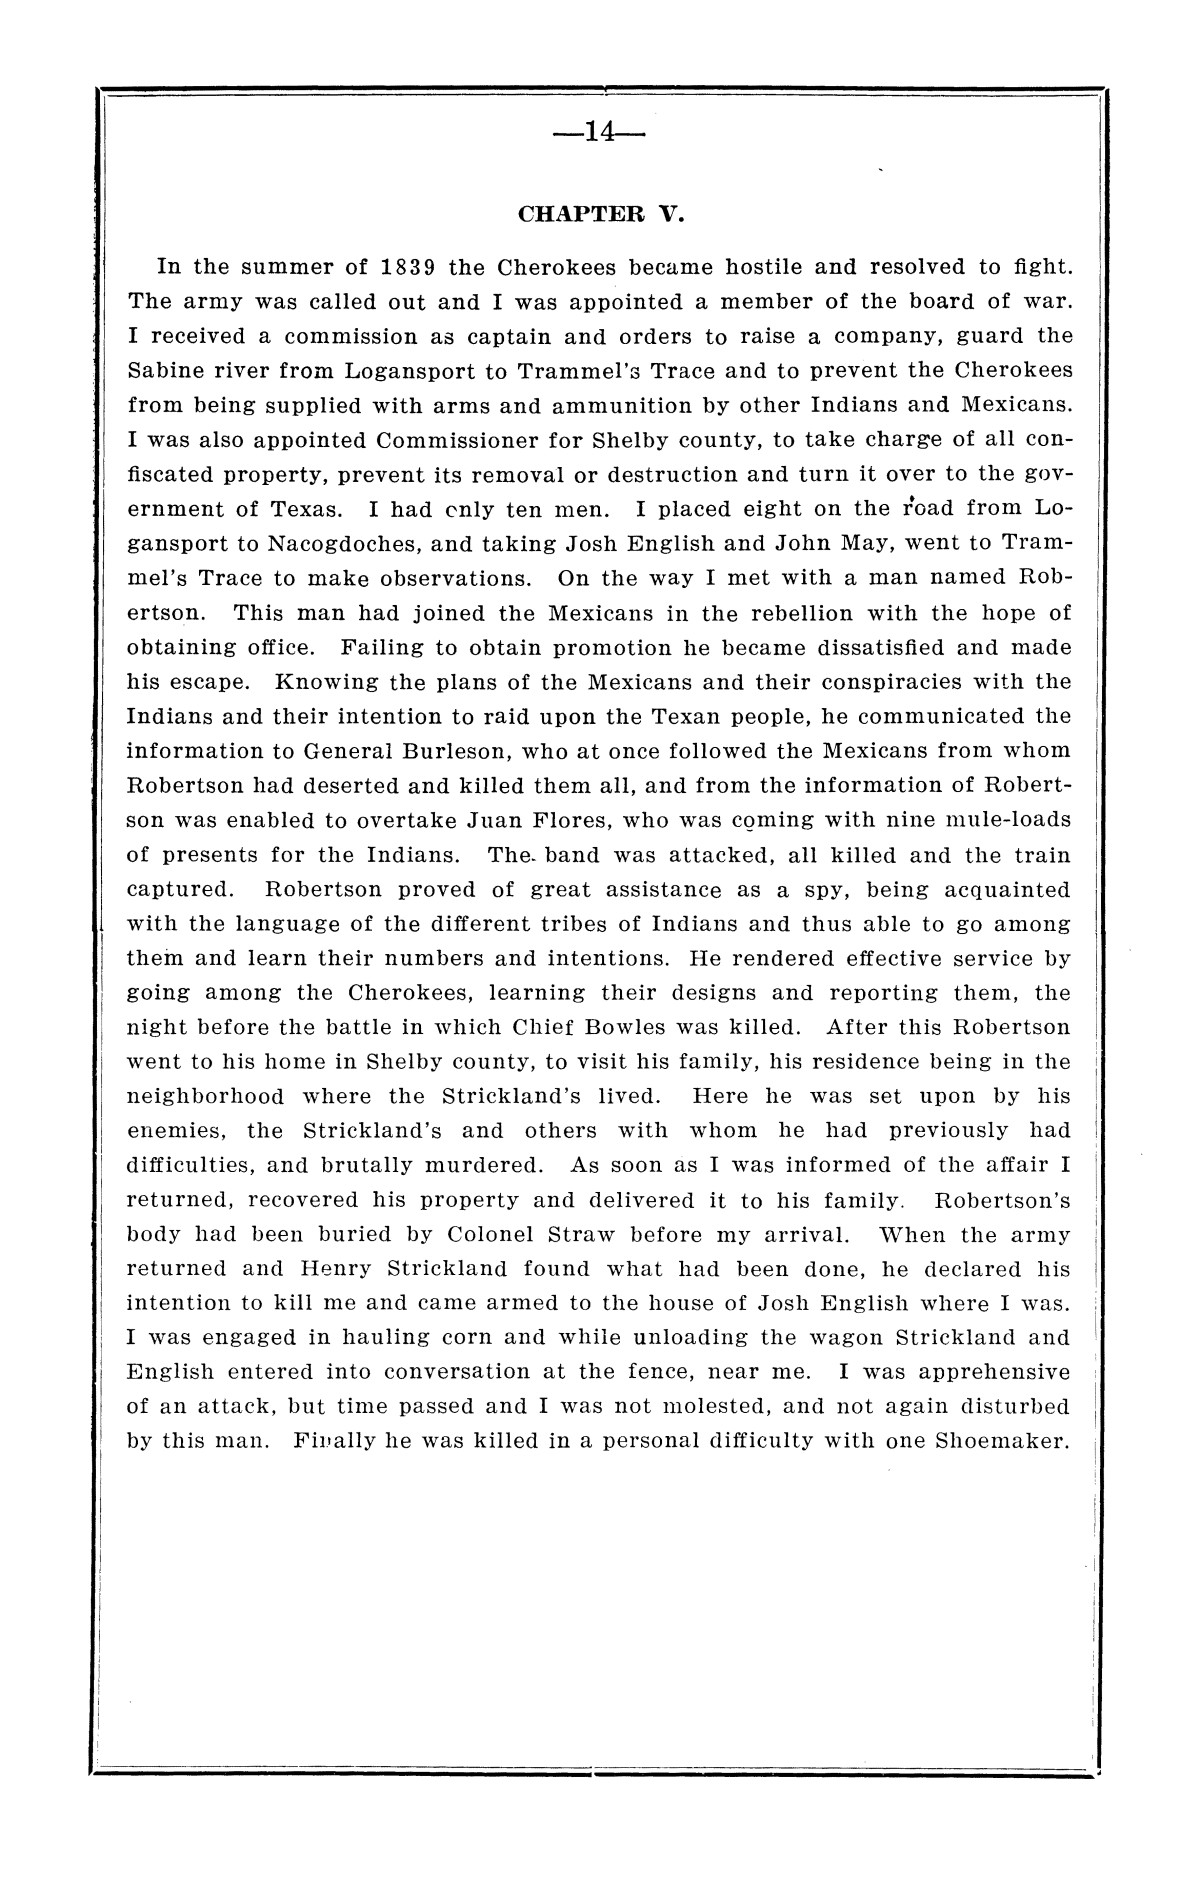 History of the regulators and moderators and the Shelby County war in 1841 and 1842, in the republic of Texas, with facts and incidents in the early history of the republic and state, from 1837 to the annexation, together with incidents of frontier life and Indian troubles, and the war on the reserve in Young County in 1857                                                                                                      [Sequence #]: 16 of 42